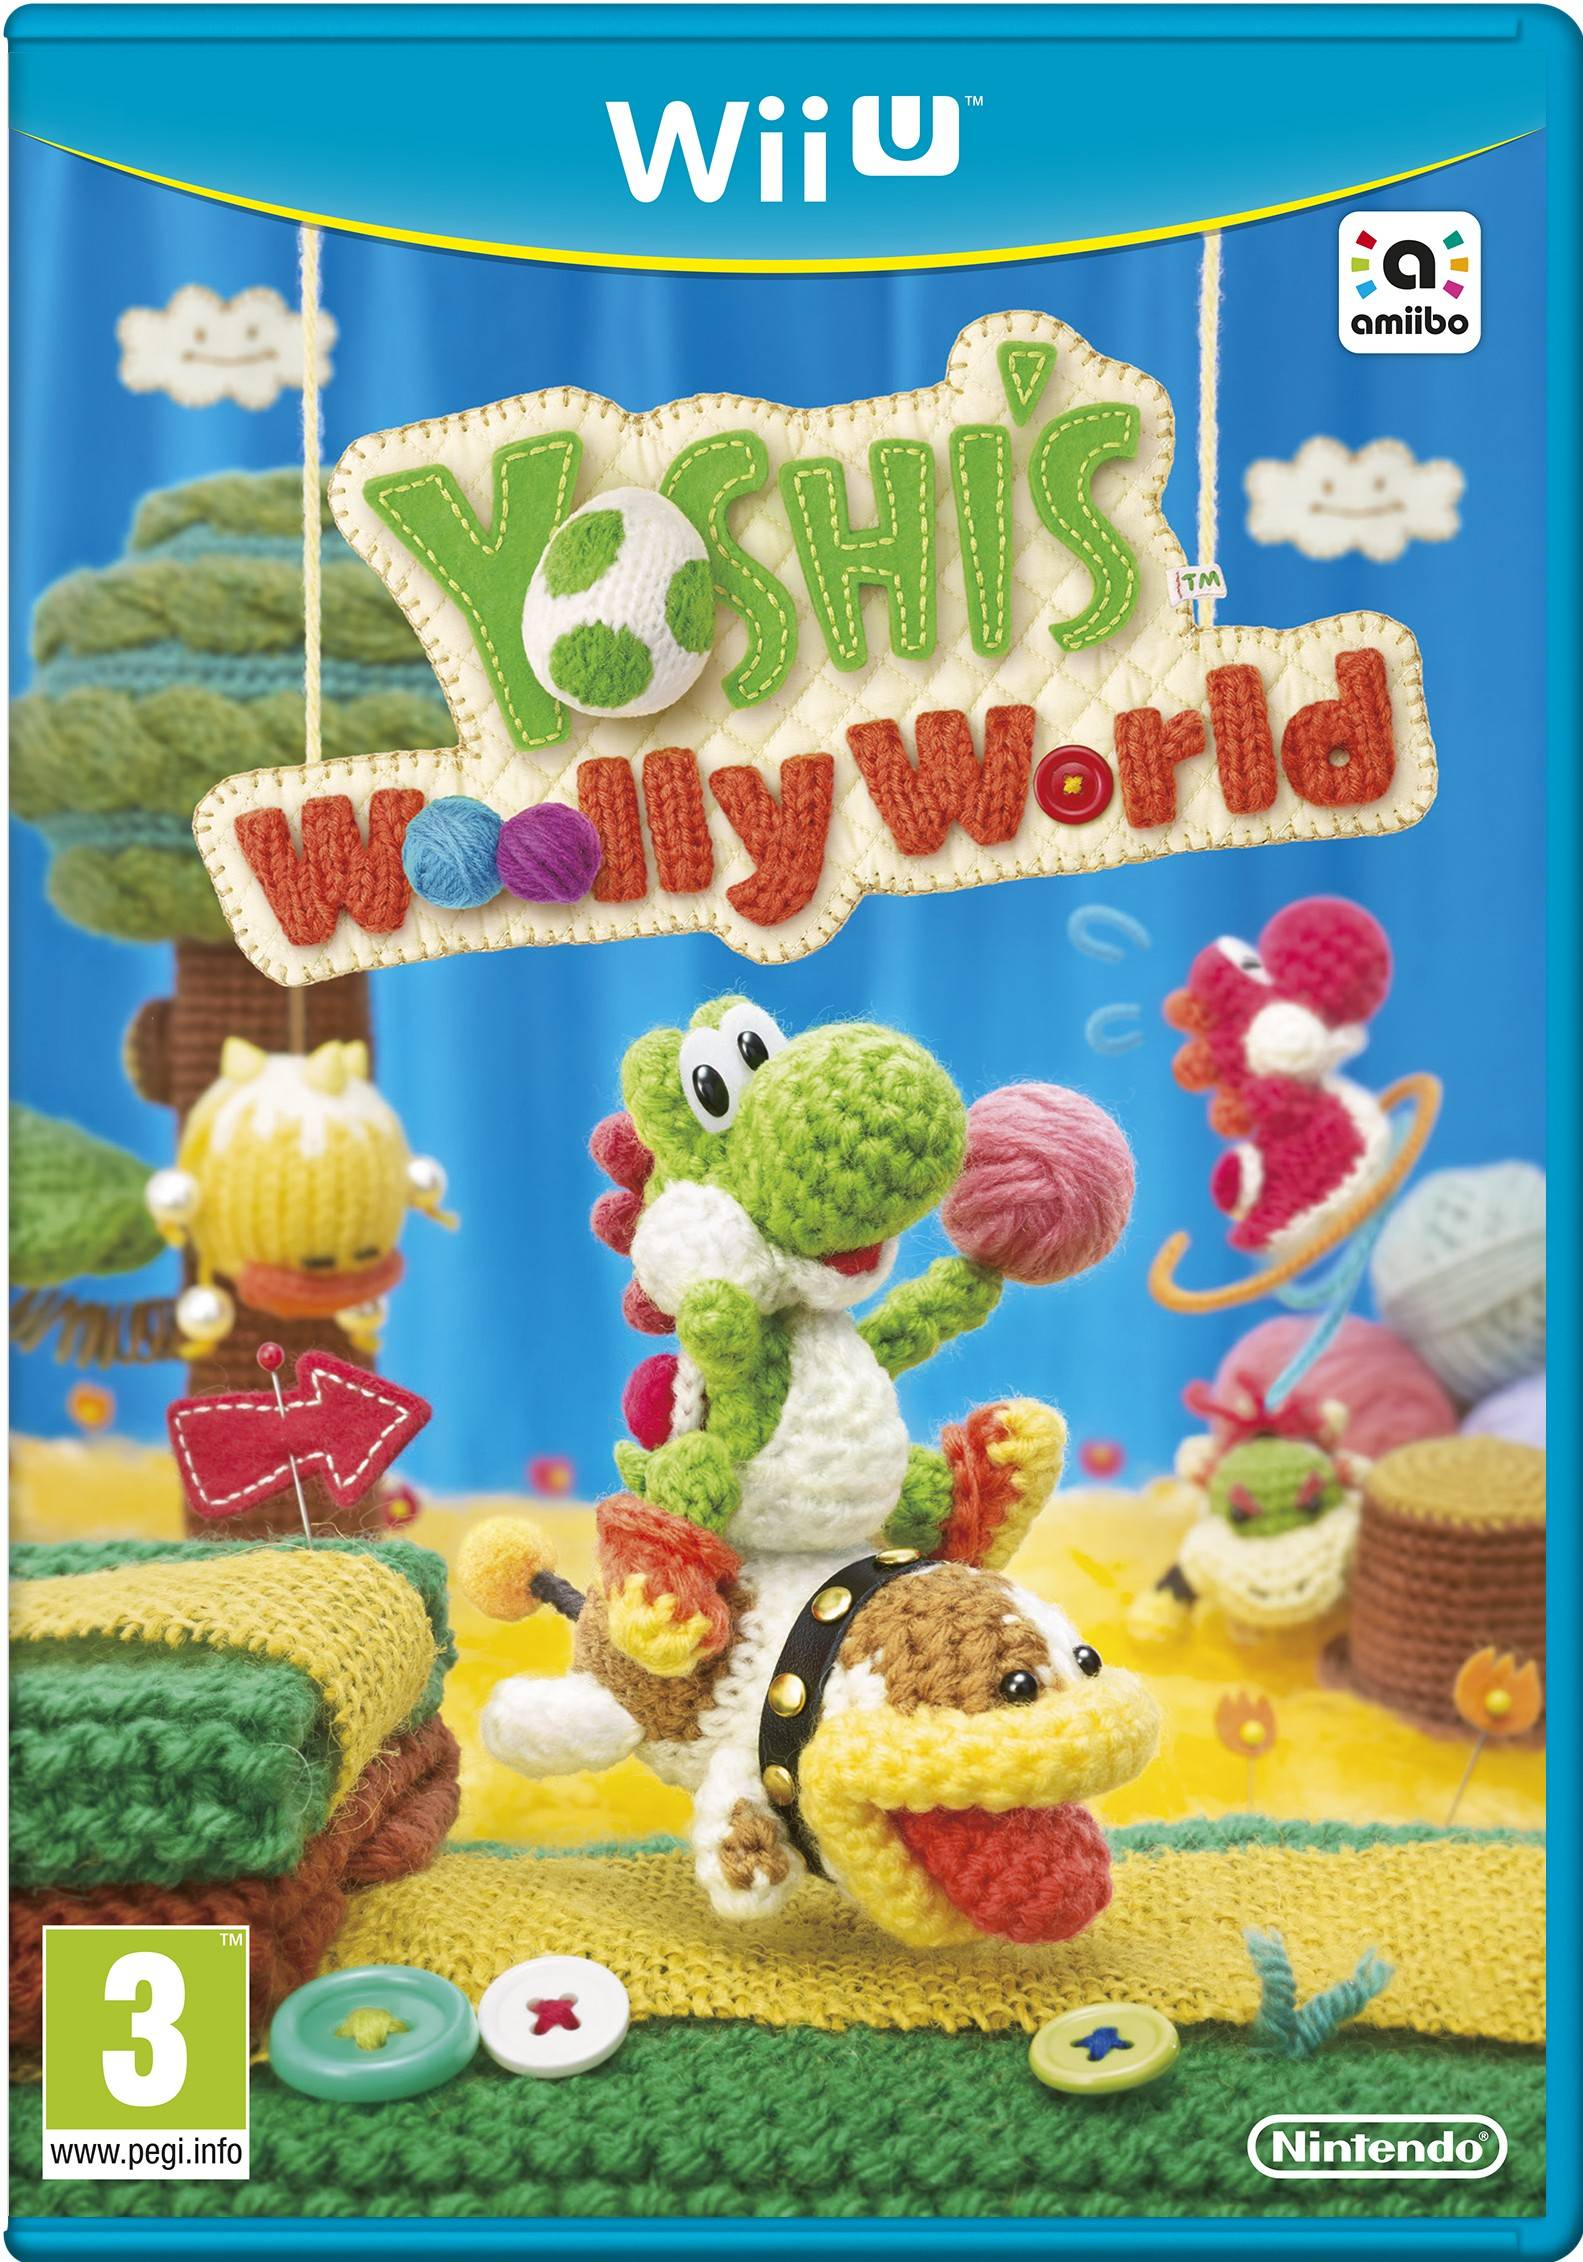 Nintendo Yoshis Woolly World (Wii U)